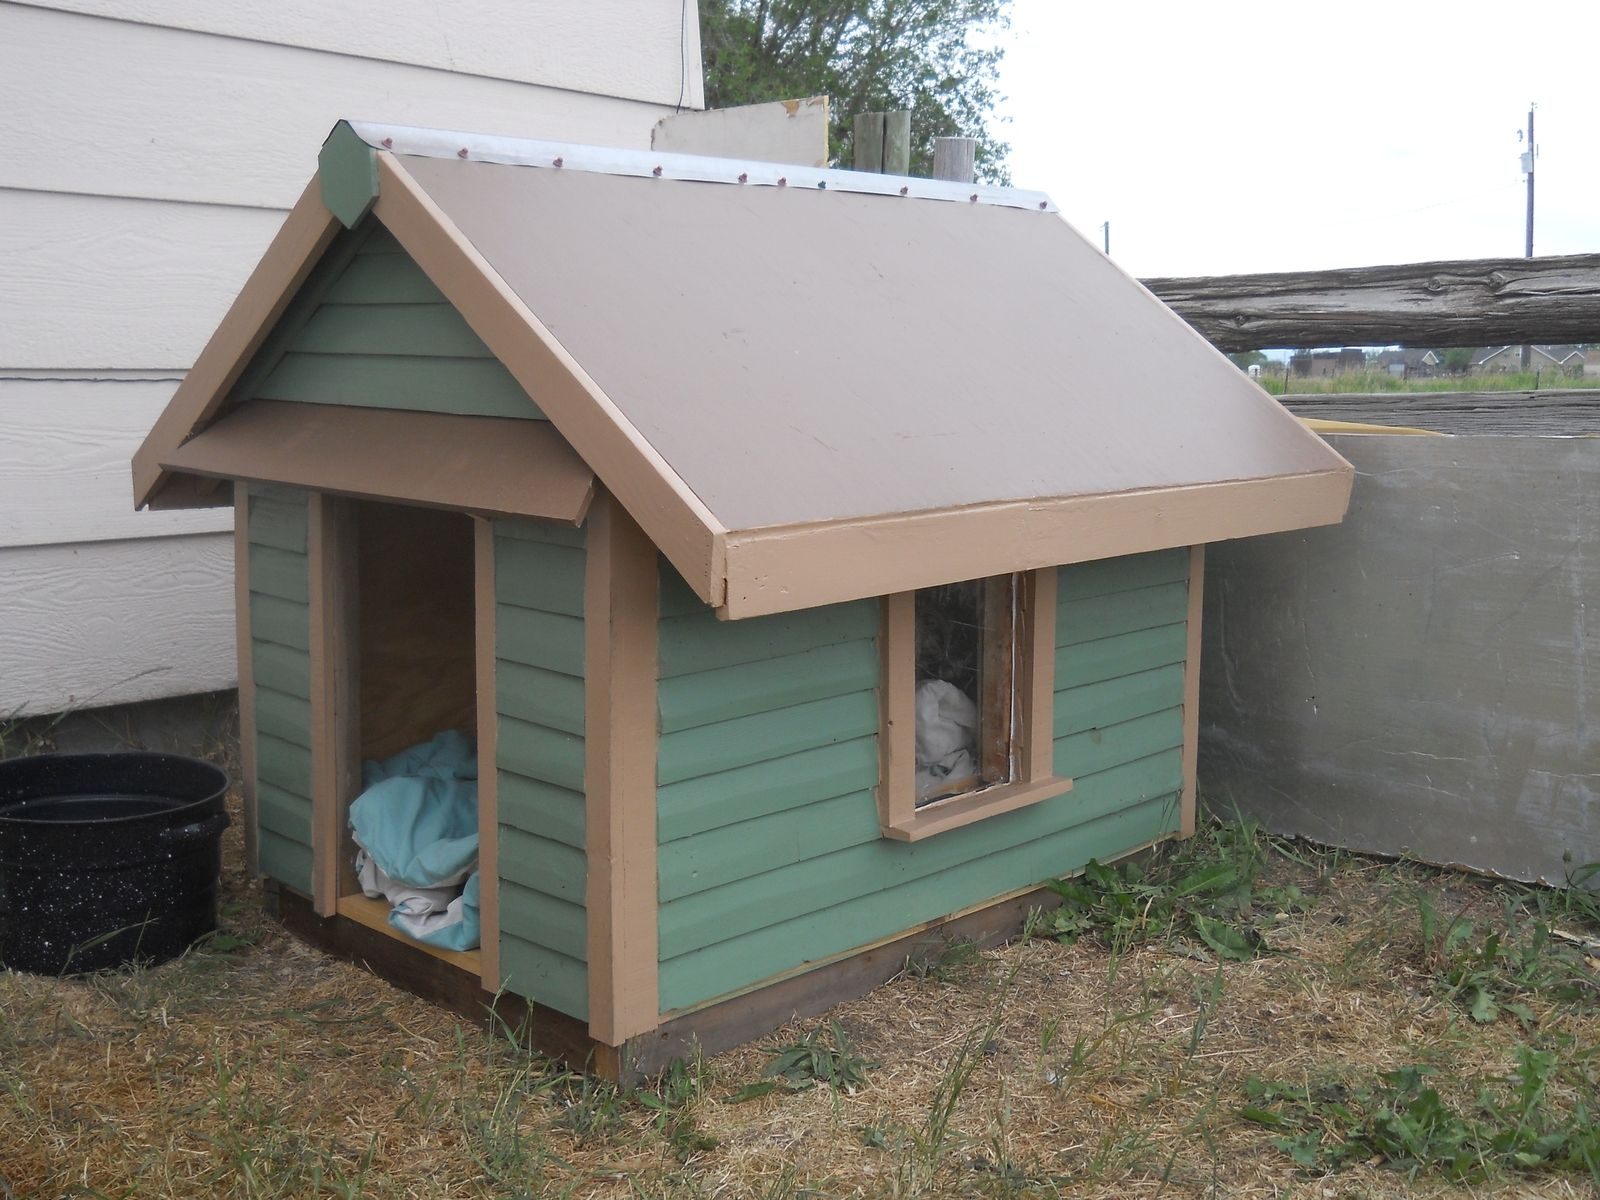 Handmade The Dog House By CynDel ODPER Elkhorn